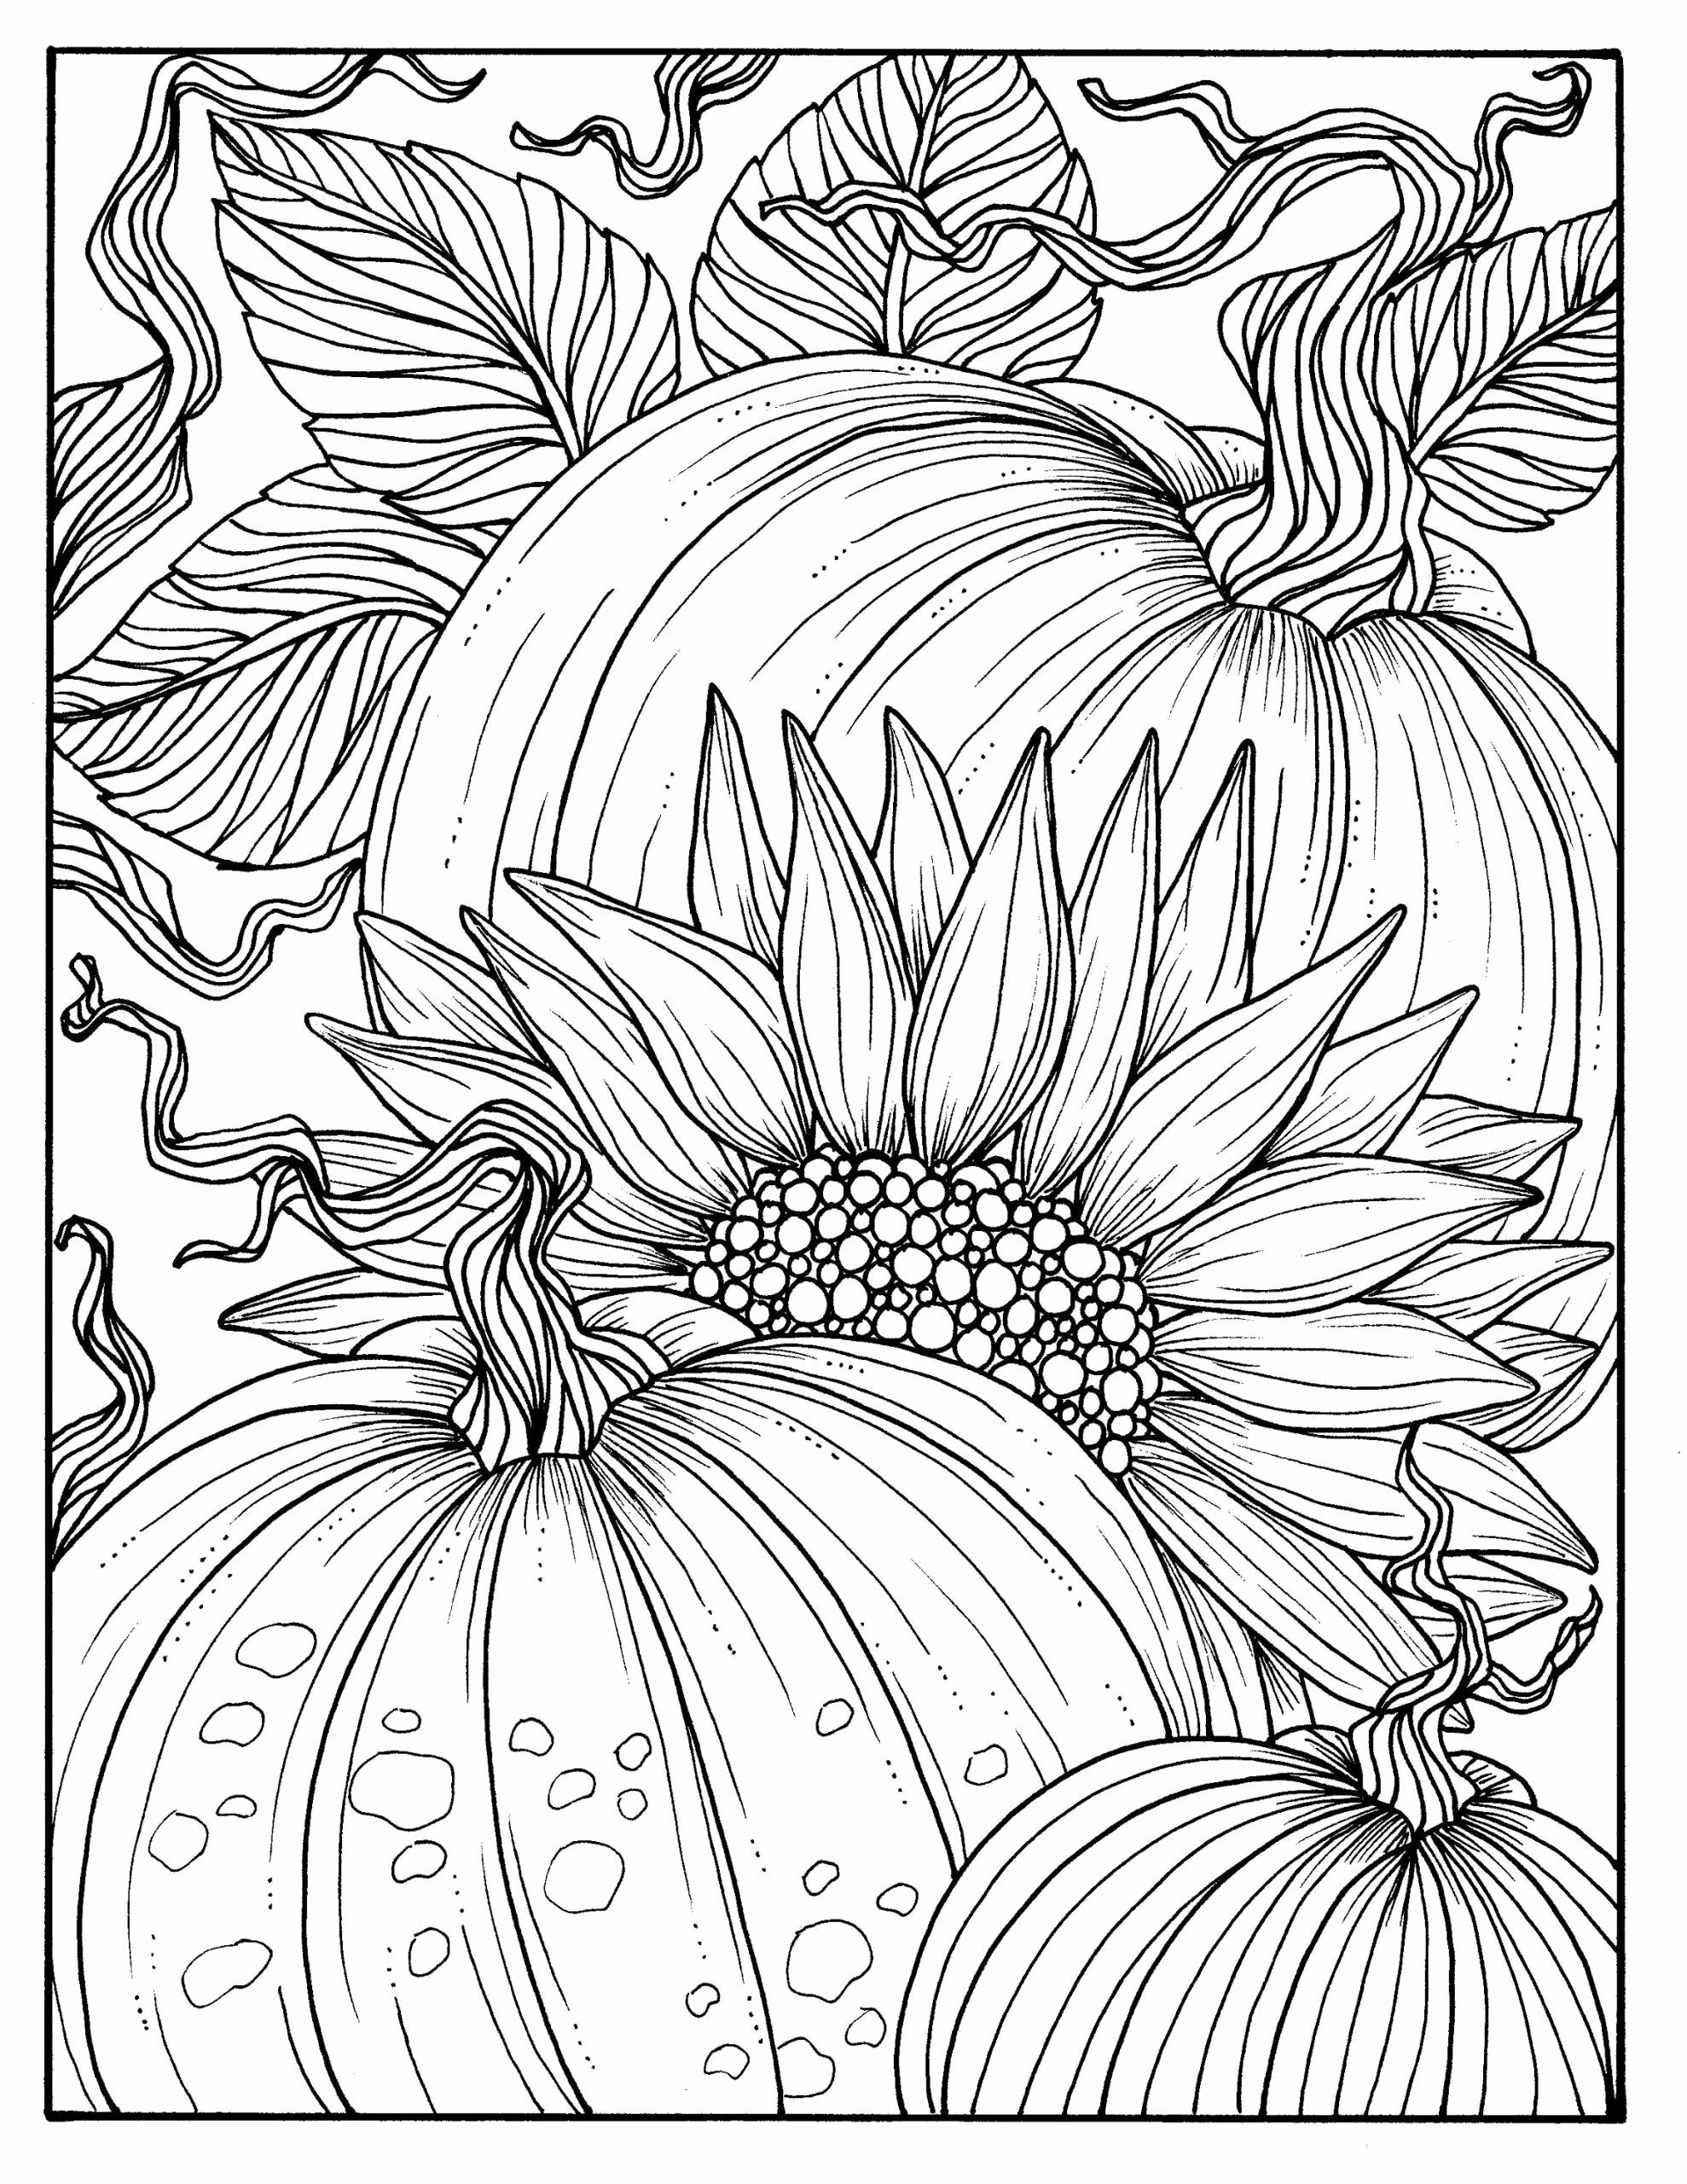 Coloring Sheets For Adults Fresh Coloring Pages Coloring Stunning Flower For Adults Pumpkin Coloring Pages Fall Coloring Pages Fall Coloring Sheets [ 2560 x 1978 Pixel ]